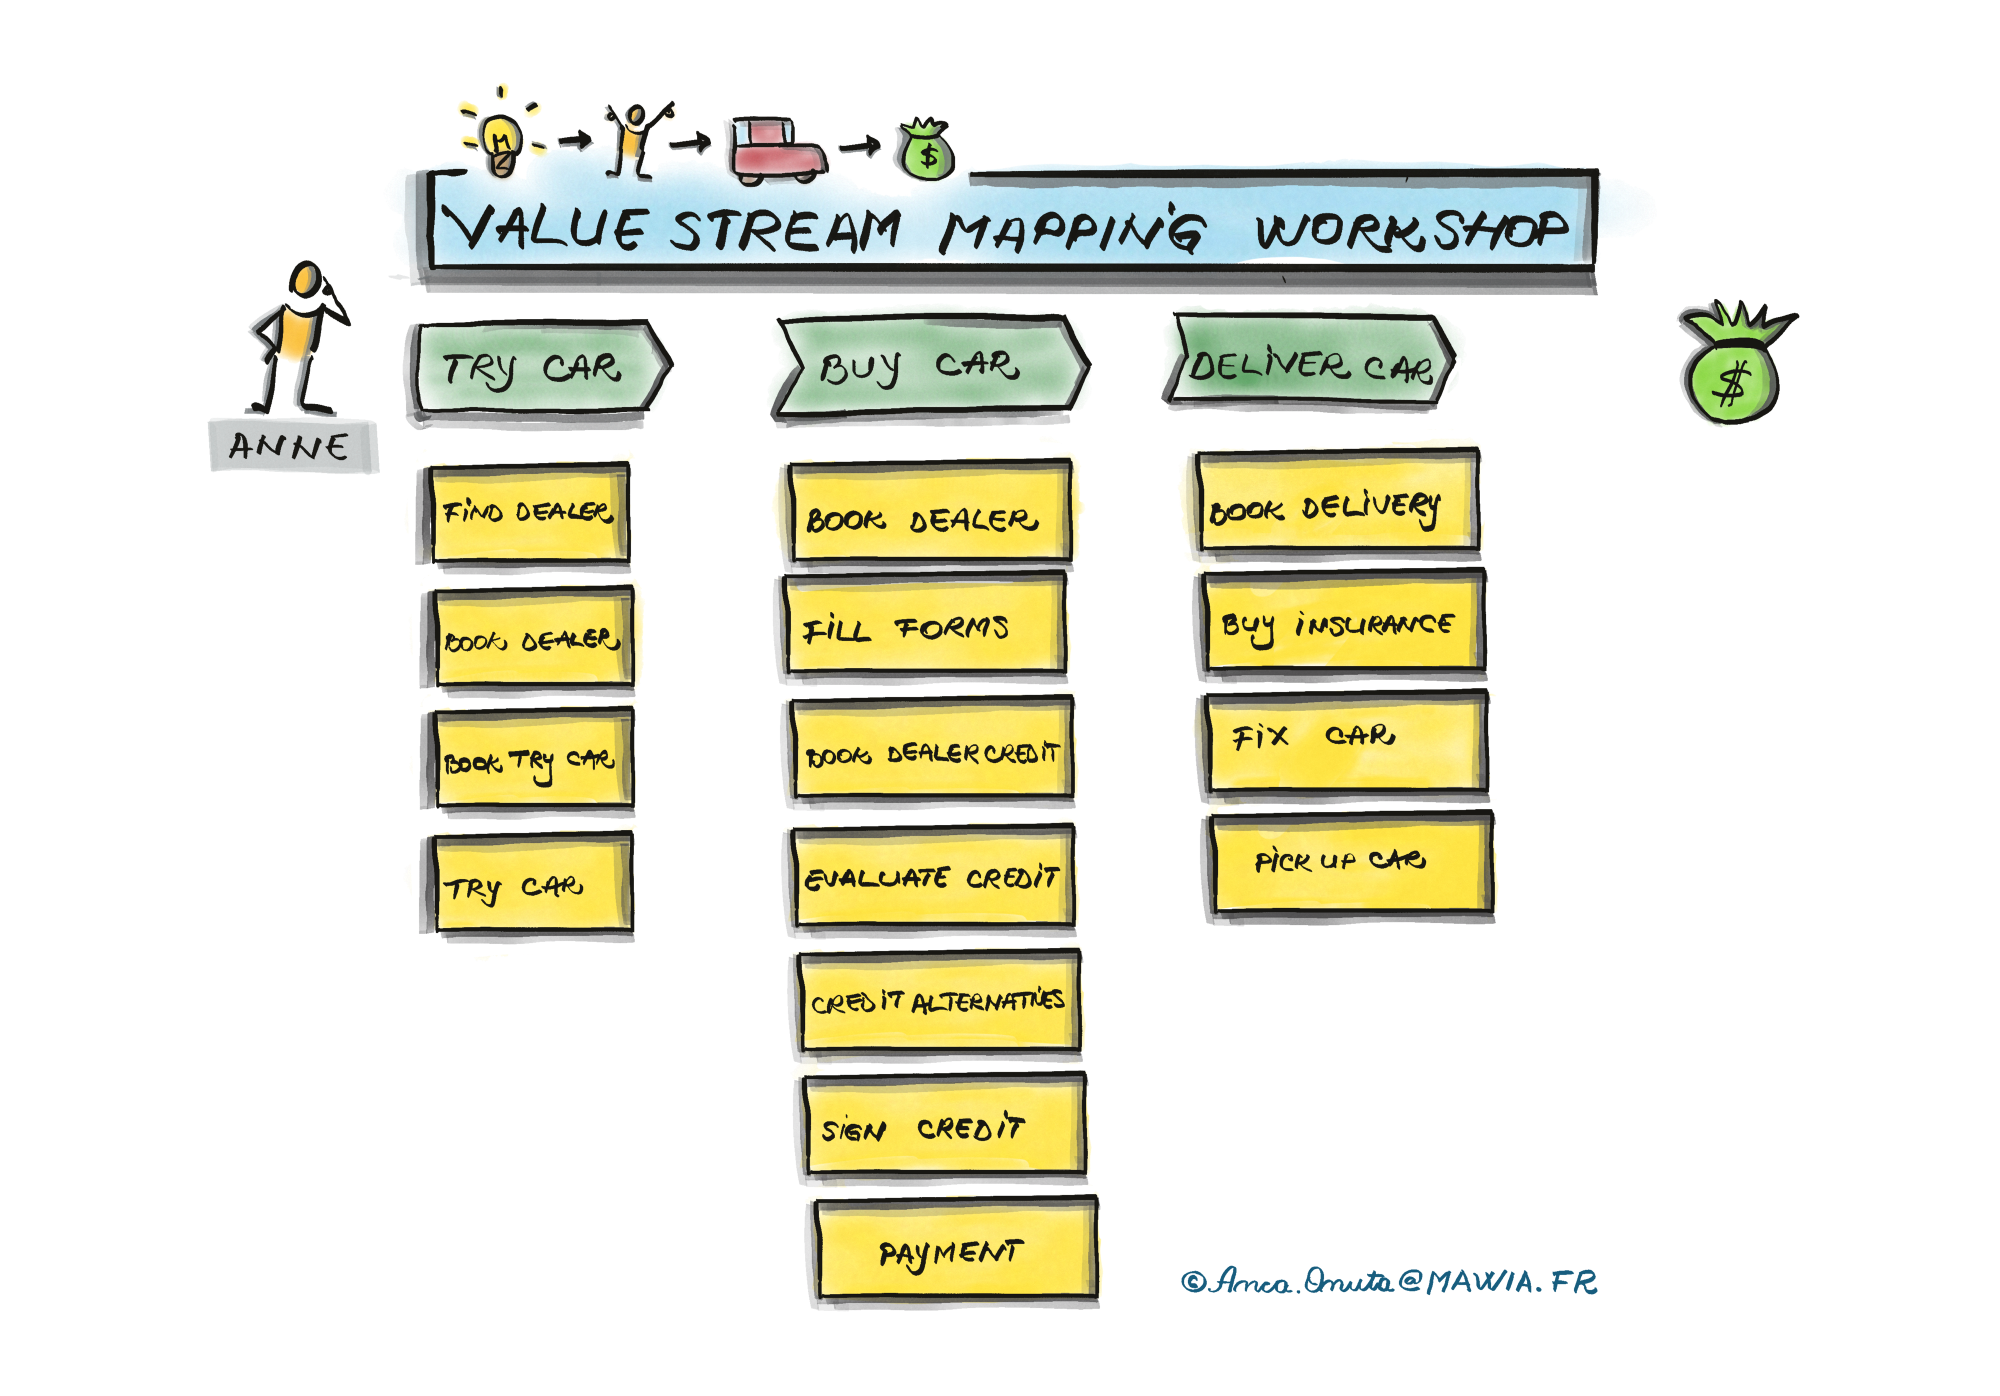 Identify the activities which are part of the value stream as part of the Remote Value Stream Mapping Workshop